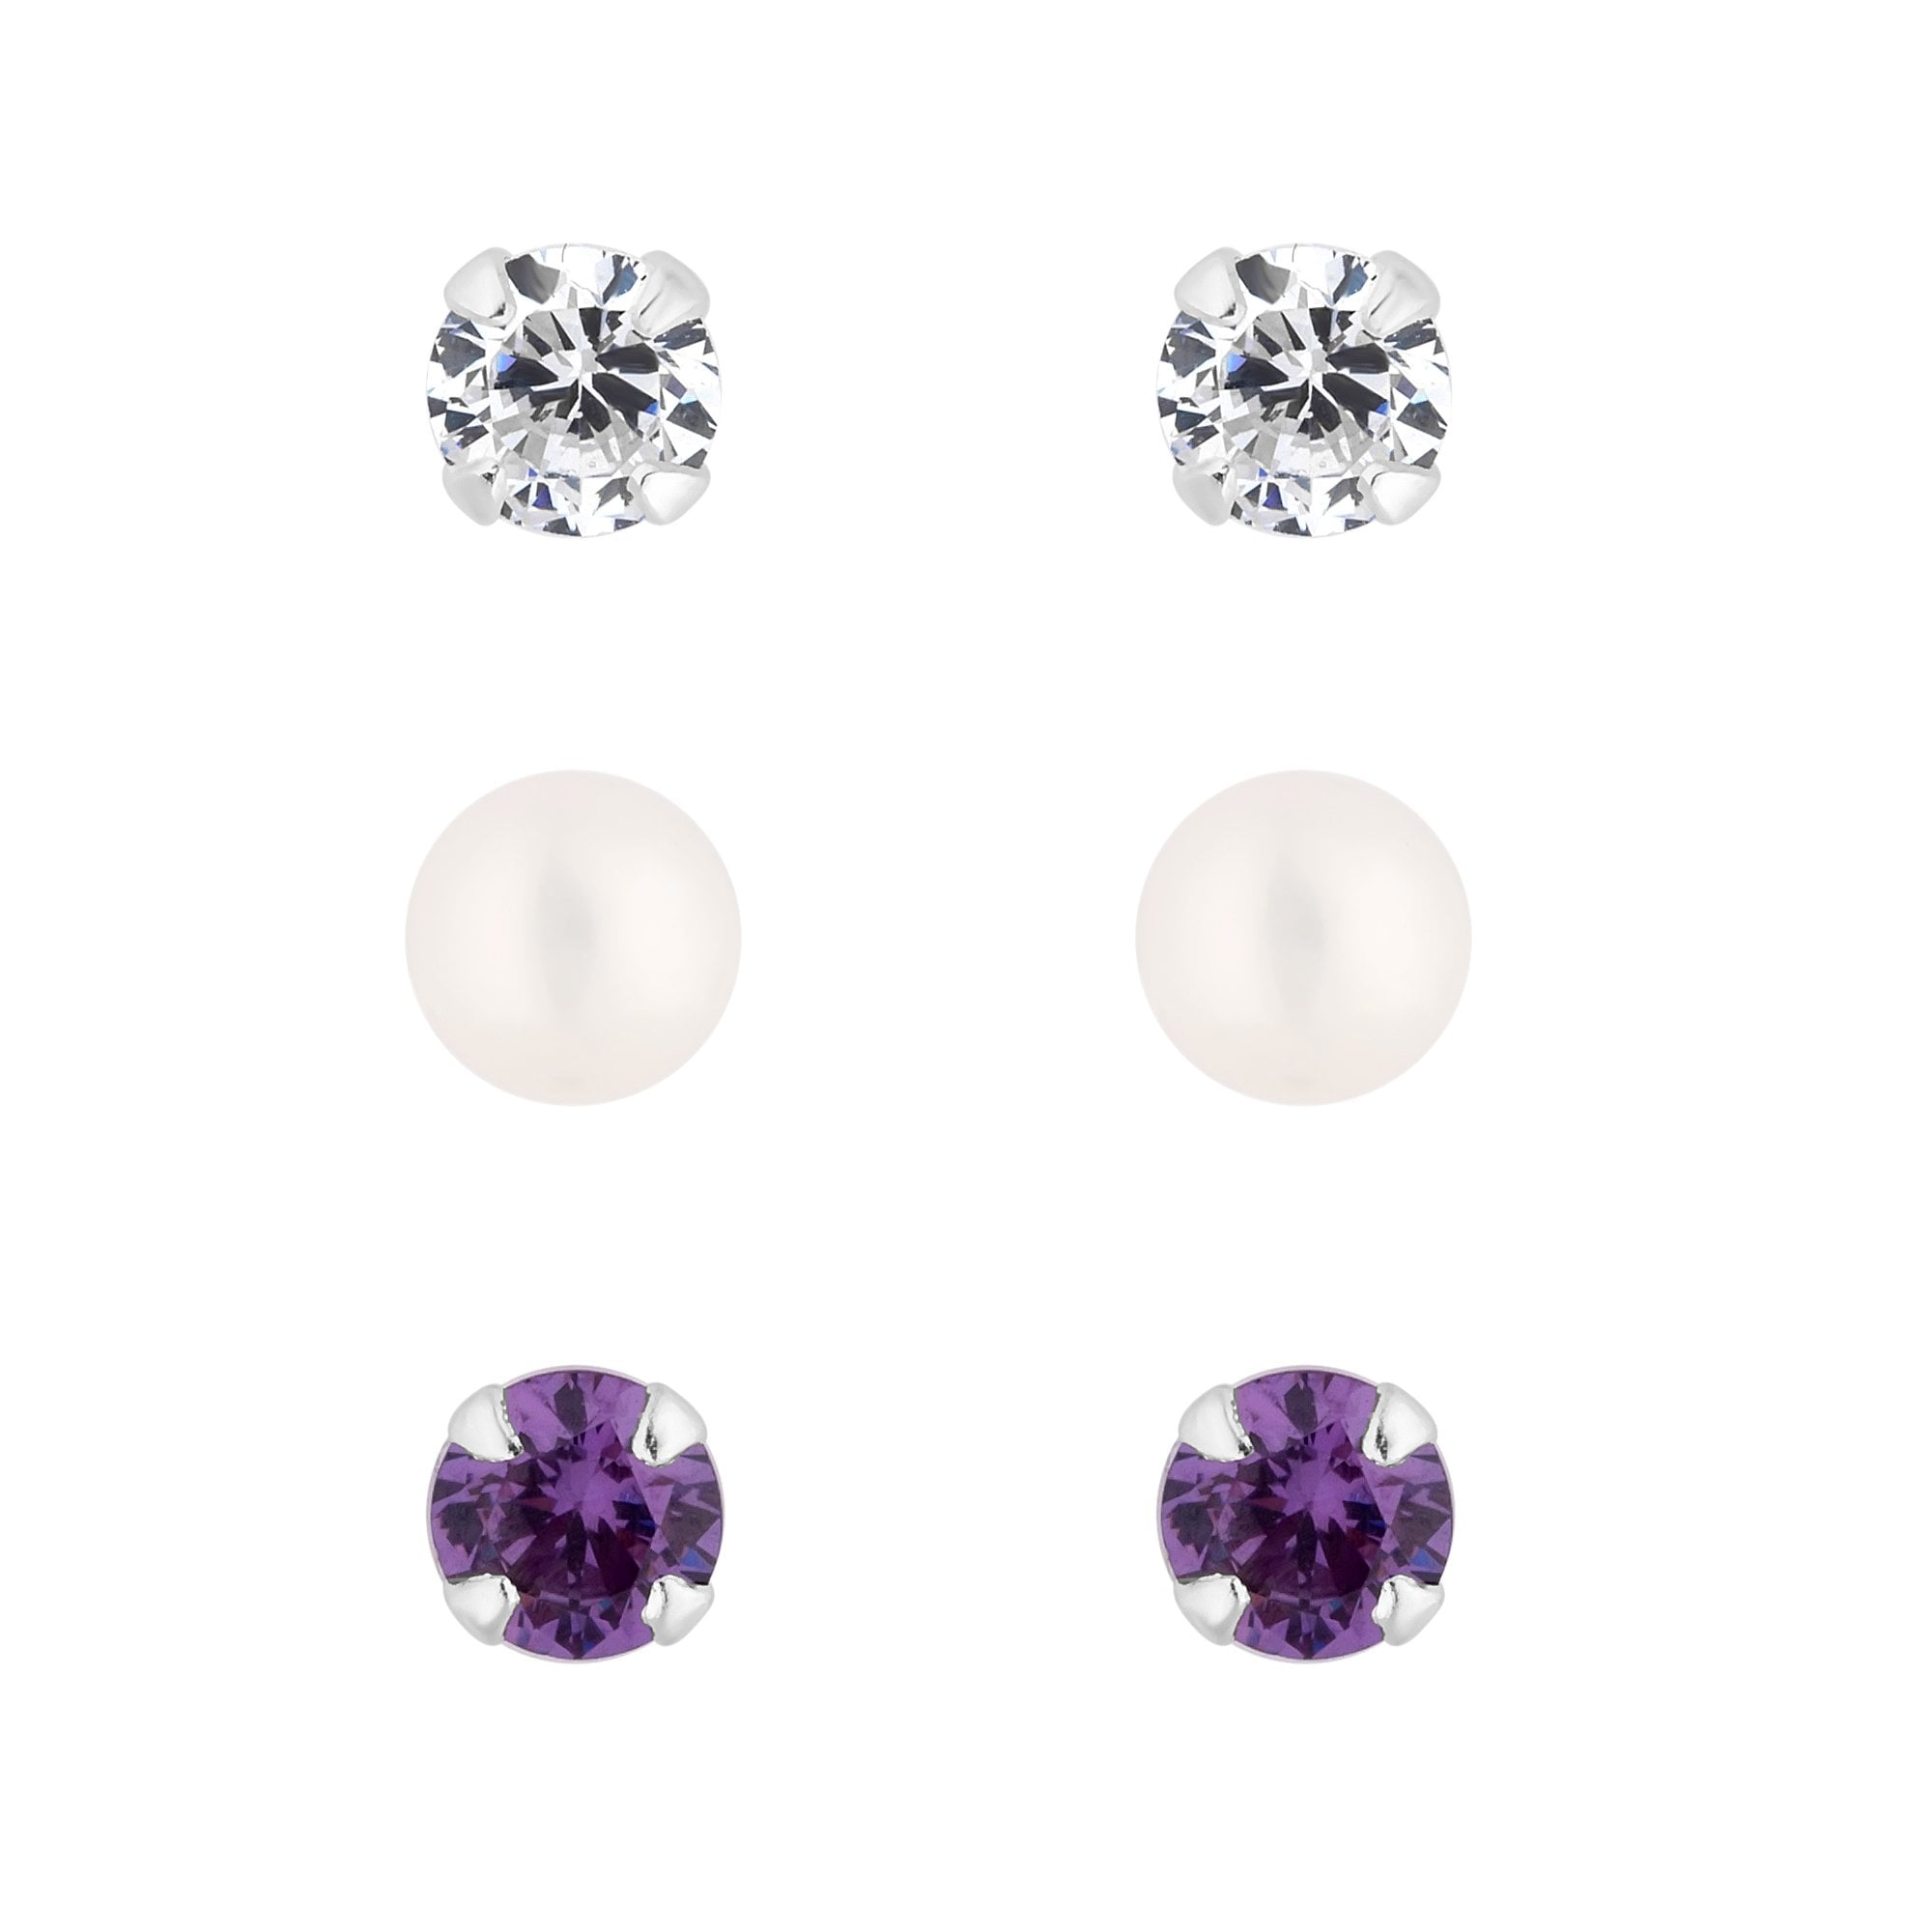 15c82170daec85 Simply Silver Sterling Silver 925 Cubic Zirconia Stud Earring Set ...